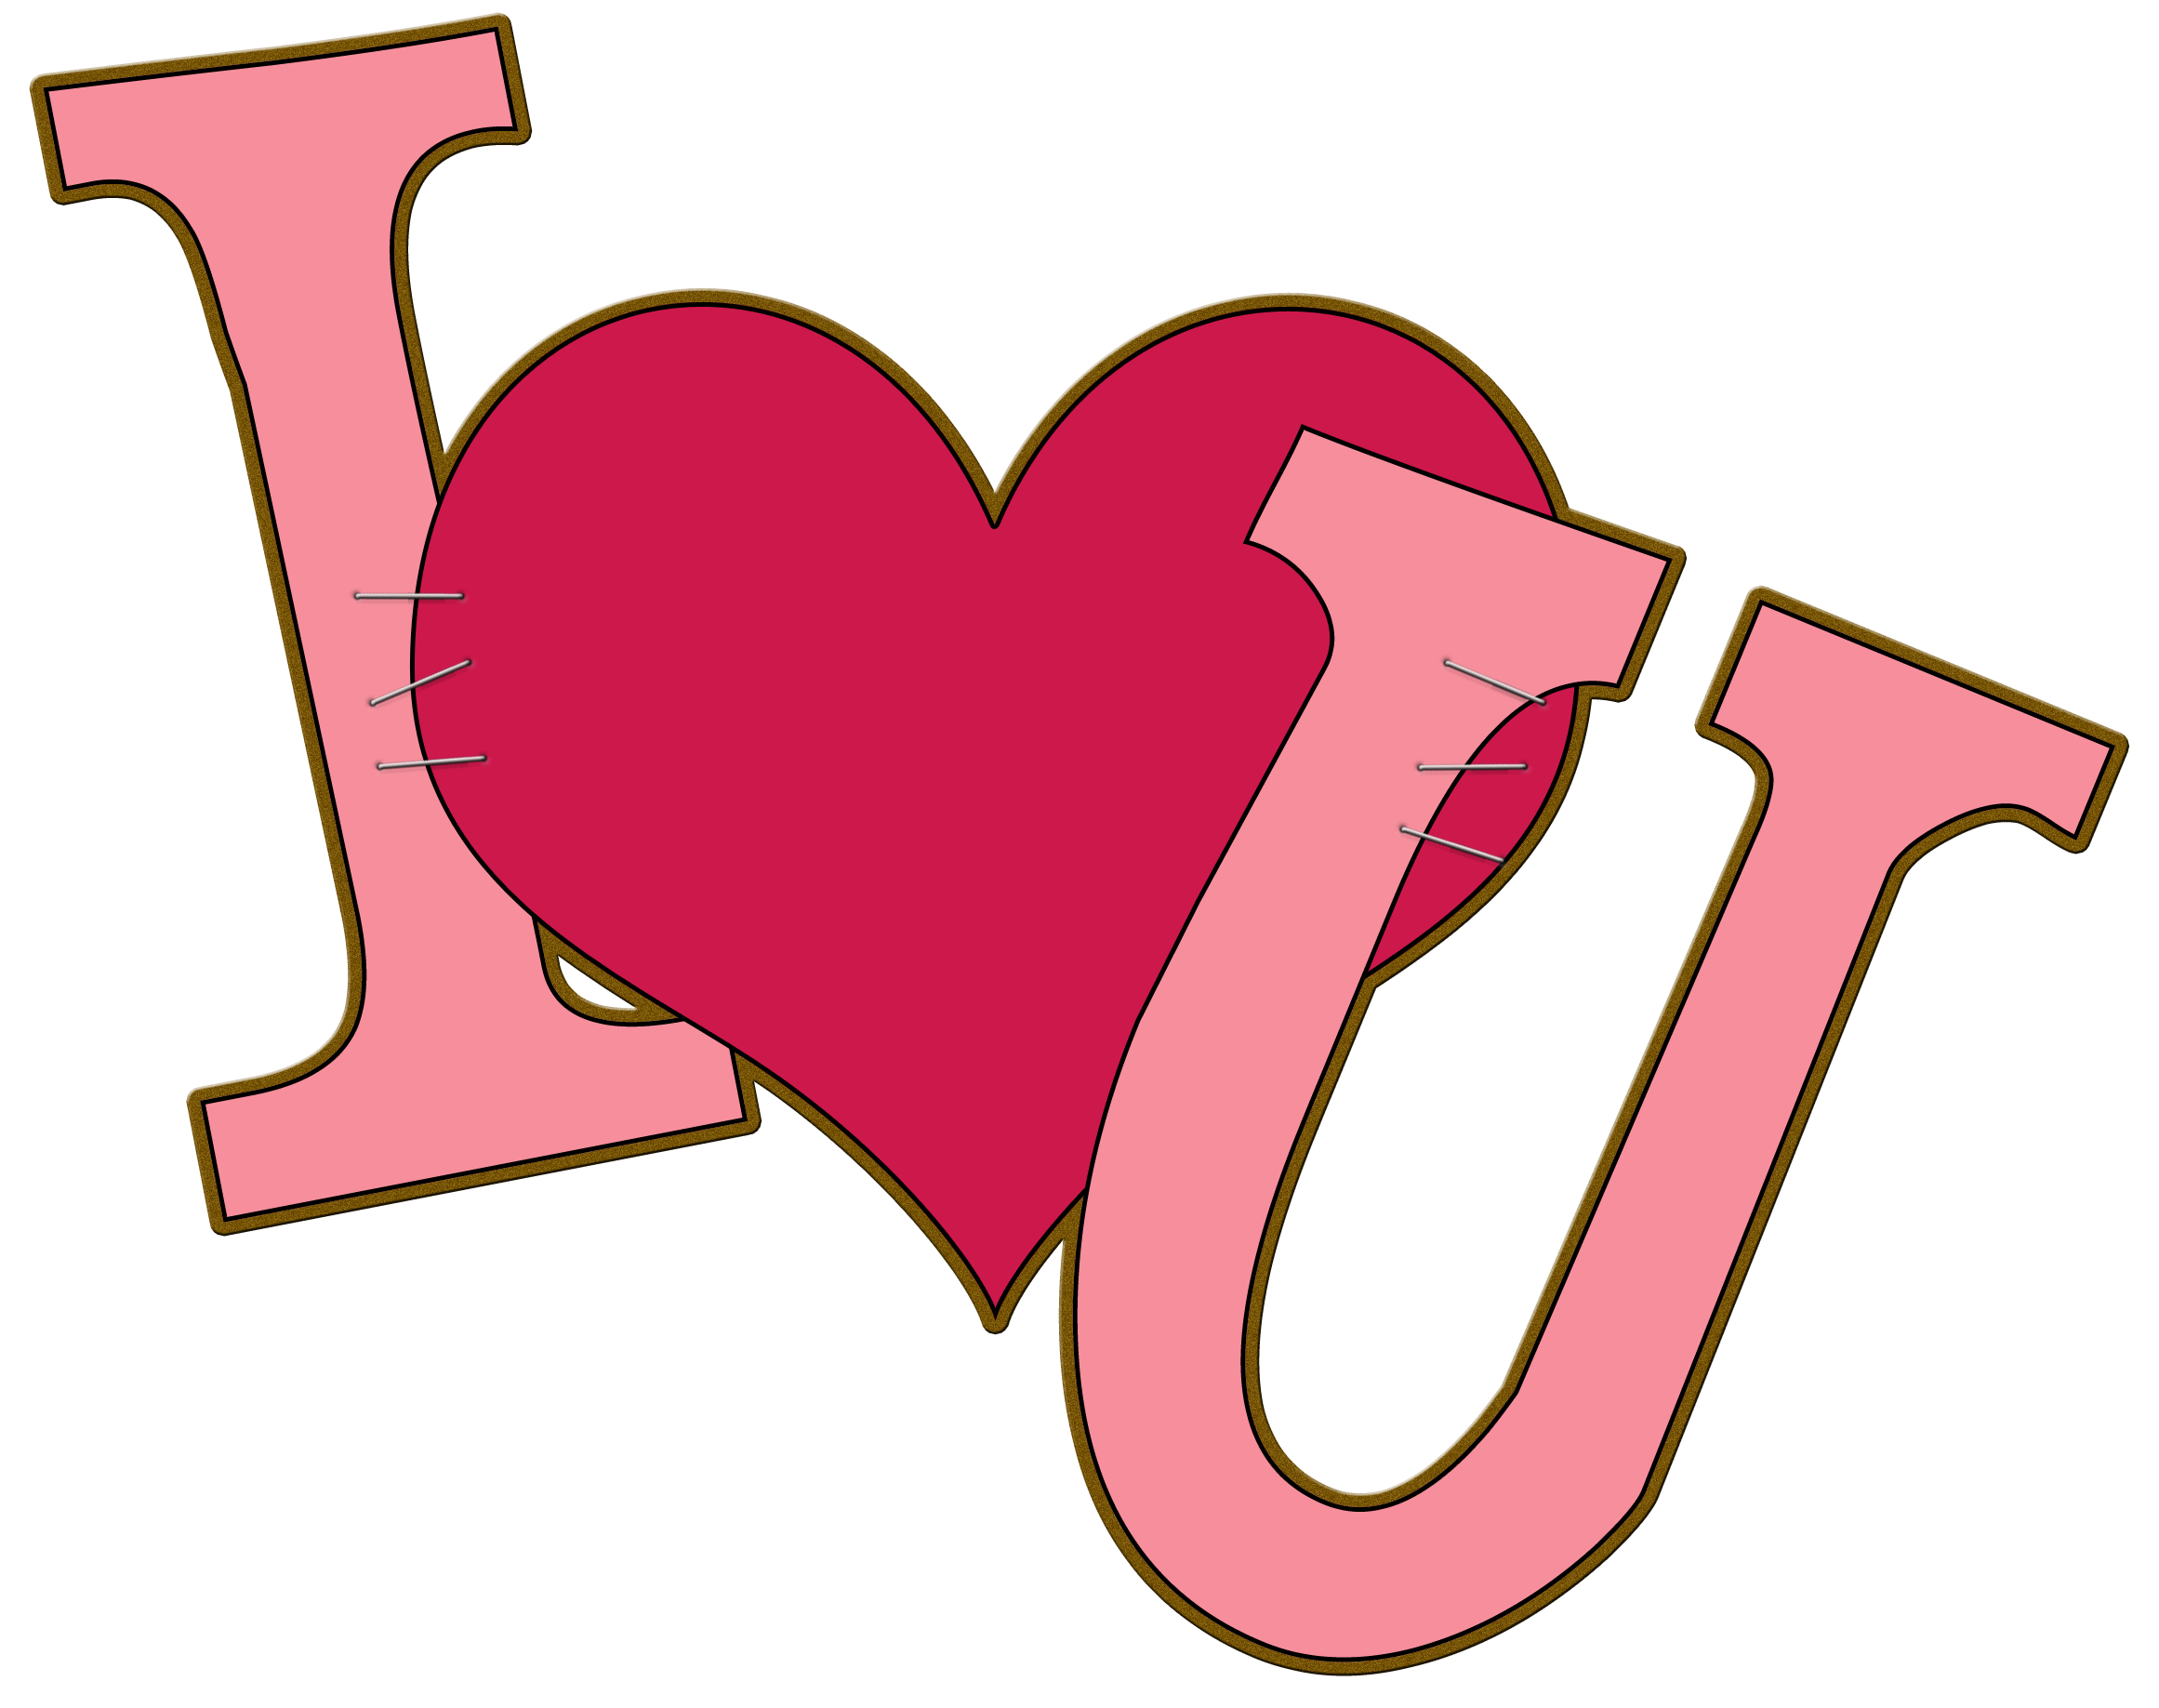 Free love clipart.